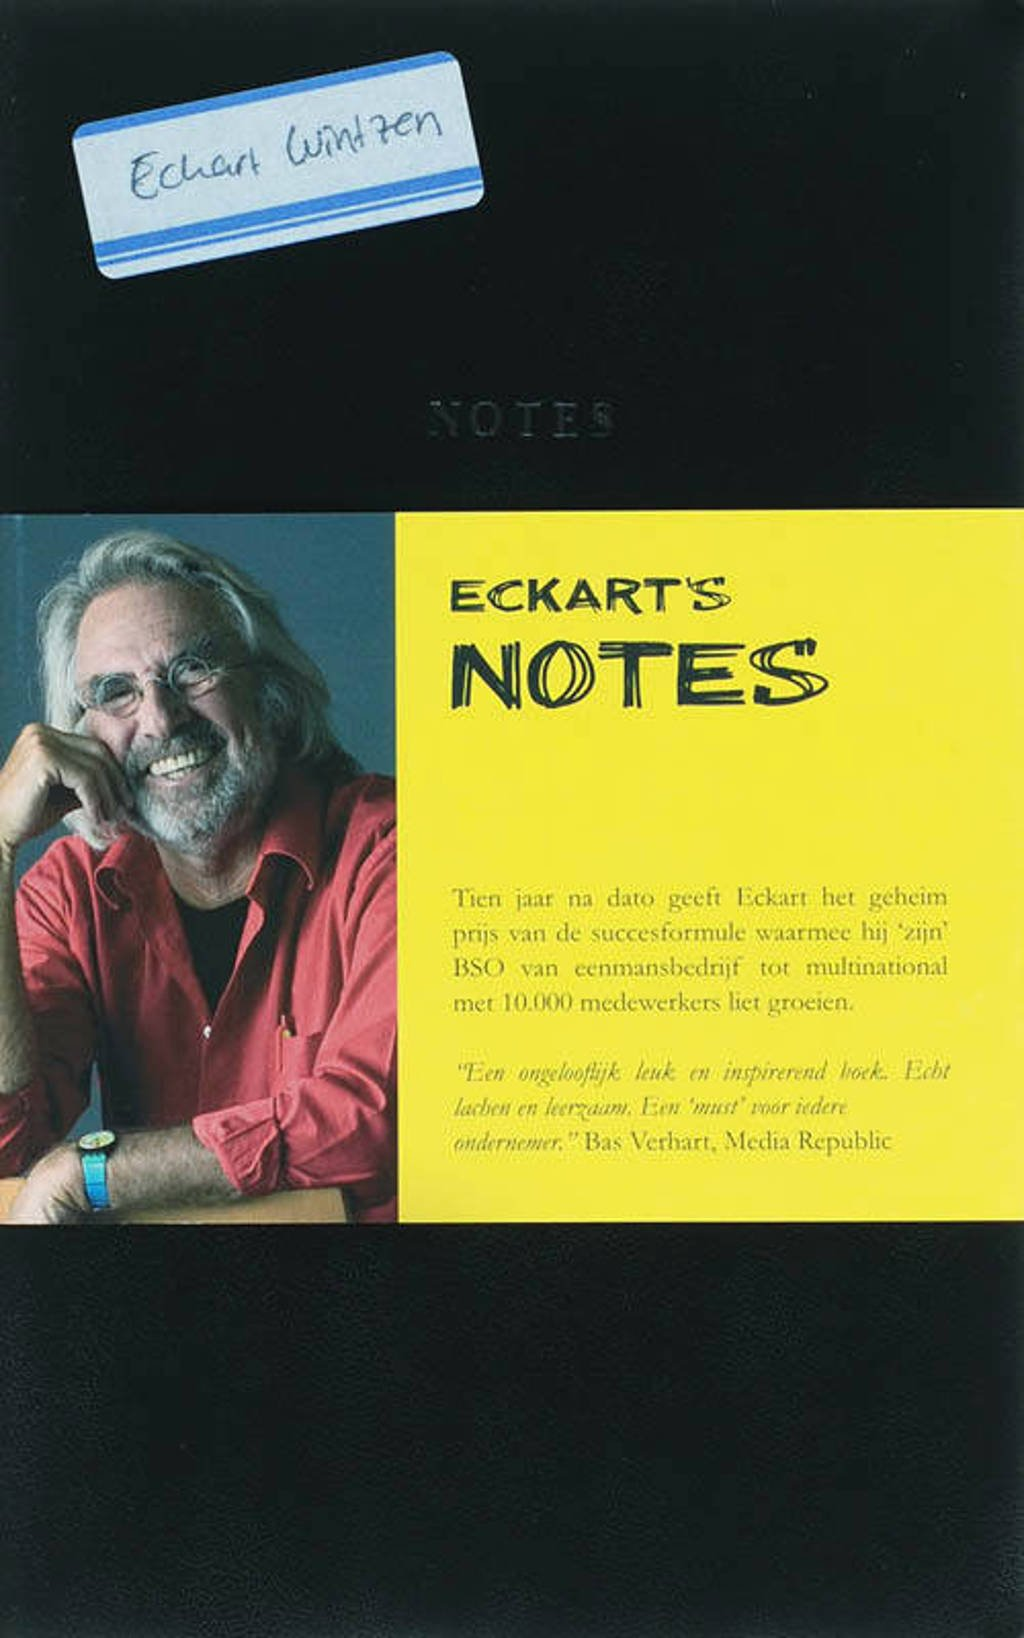 Eckart's notes - Eckart Wintzen